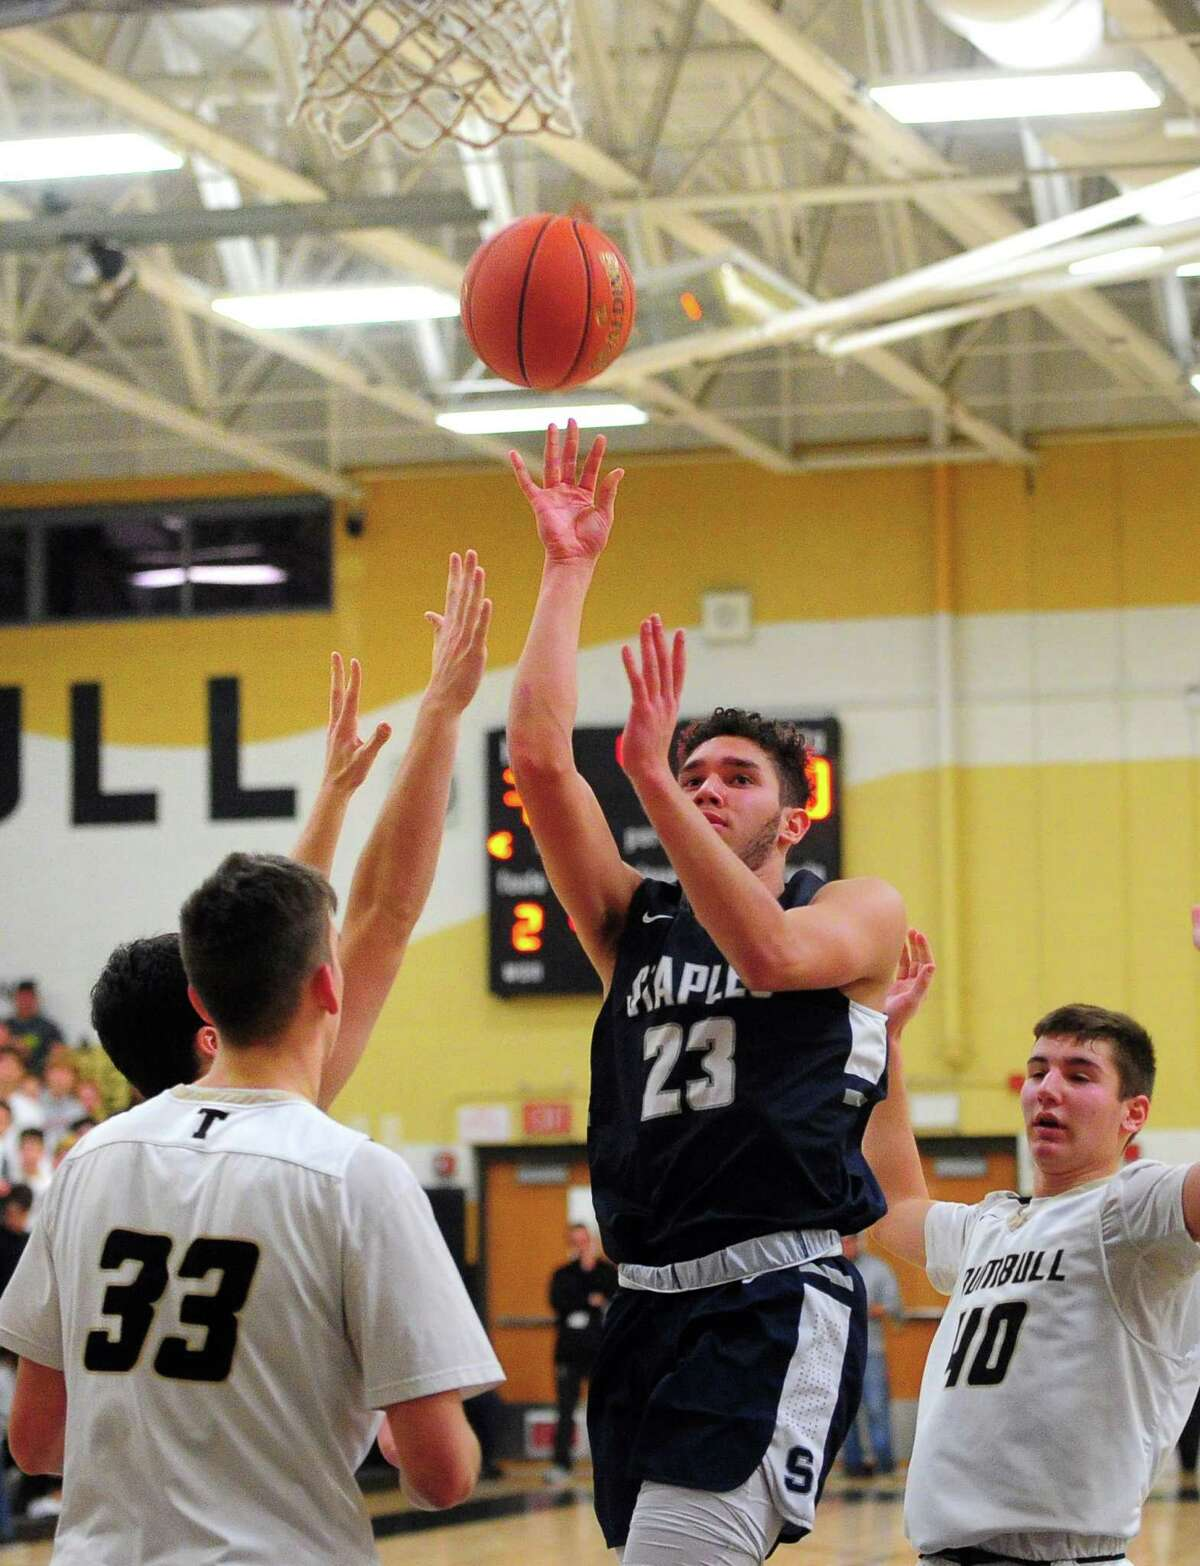 Staples' Lucas Basich (23) attempts a shot during boys basketball action against Trumbull in Trumbull, Conn., on Friday Jan. 17, 2020.